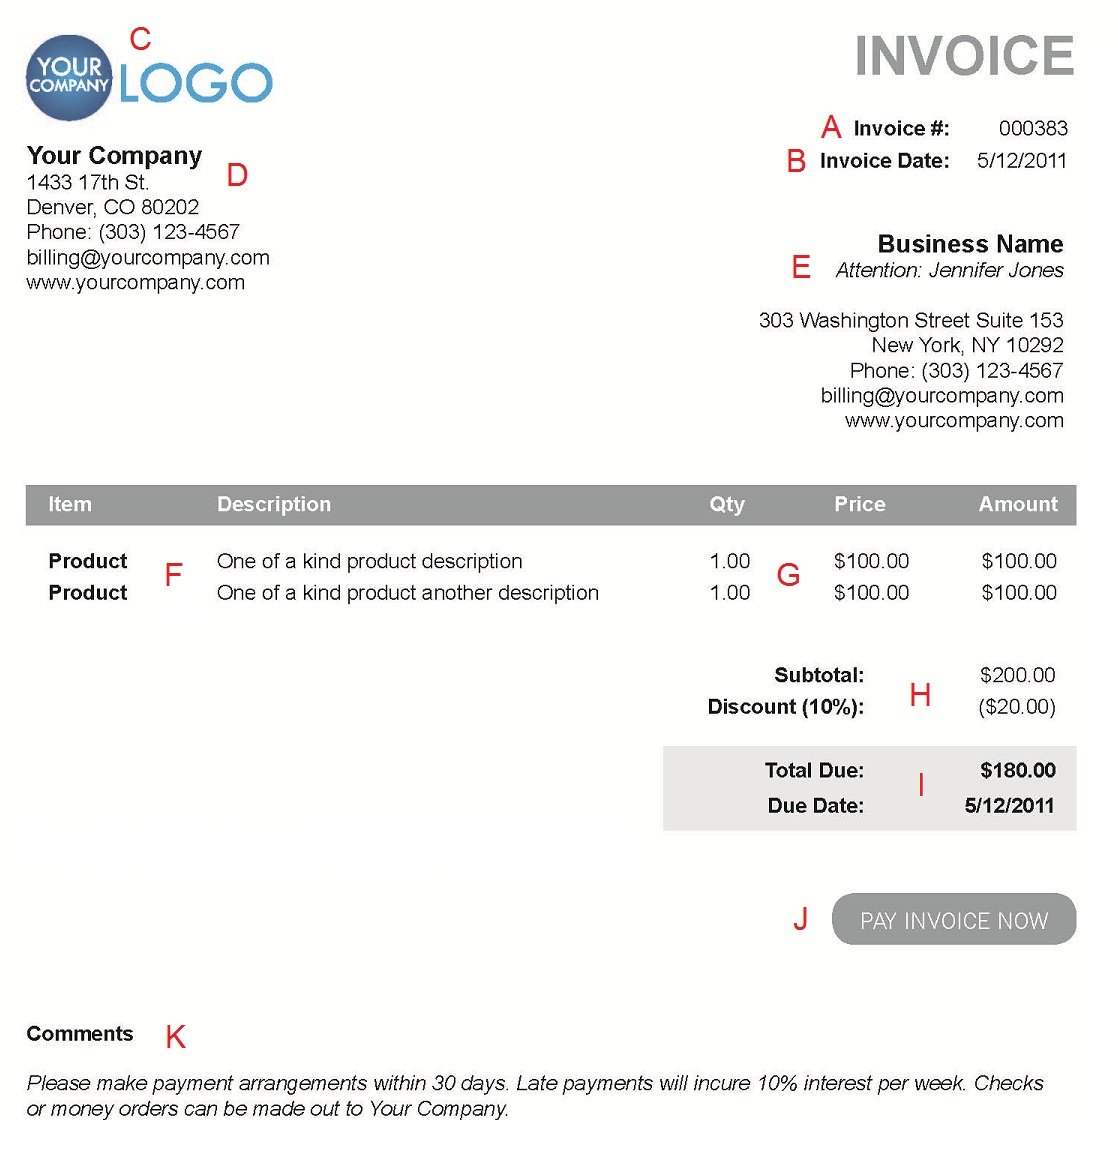 Darkfaderus  Fascinating The  Different Sections Of An Electronic Payment Invoice With Great A  With Appealing Invoice Sheets Also Invoices Software In Addition Invoice Price Jeep Wrangler And Invoice Record Keeping Template As Well As Fake Invoices Templates Additionally Google Invoice App From Paysimplecom With Darkfaderus  Great The  Different Sections Of An Electronic Payment Invoice With Appealing A  And Fascinating Invoice Sheets Also Invoices Software In Addition Invoice Price Jeep Wrangler From Paysimplecom